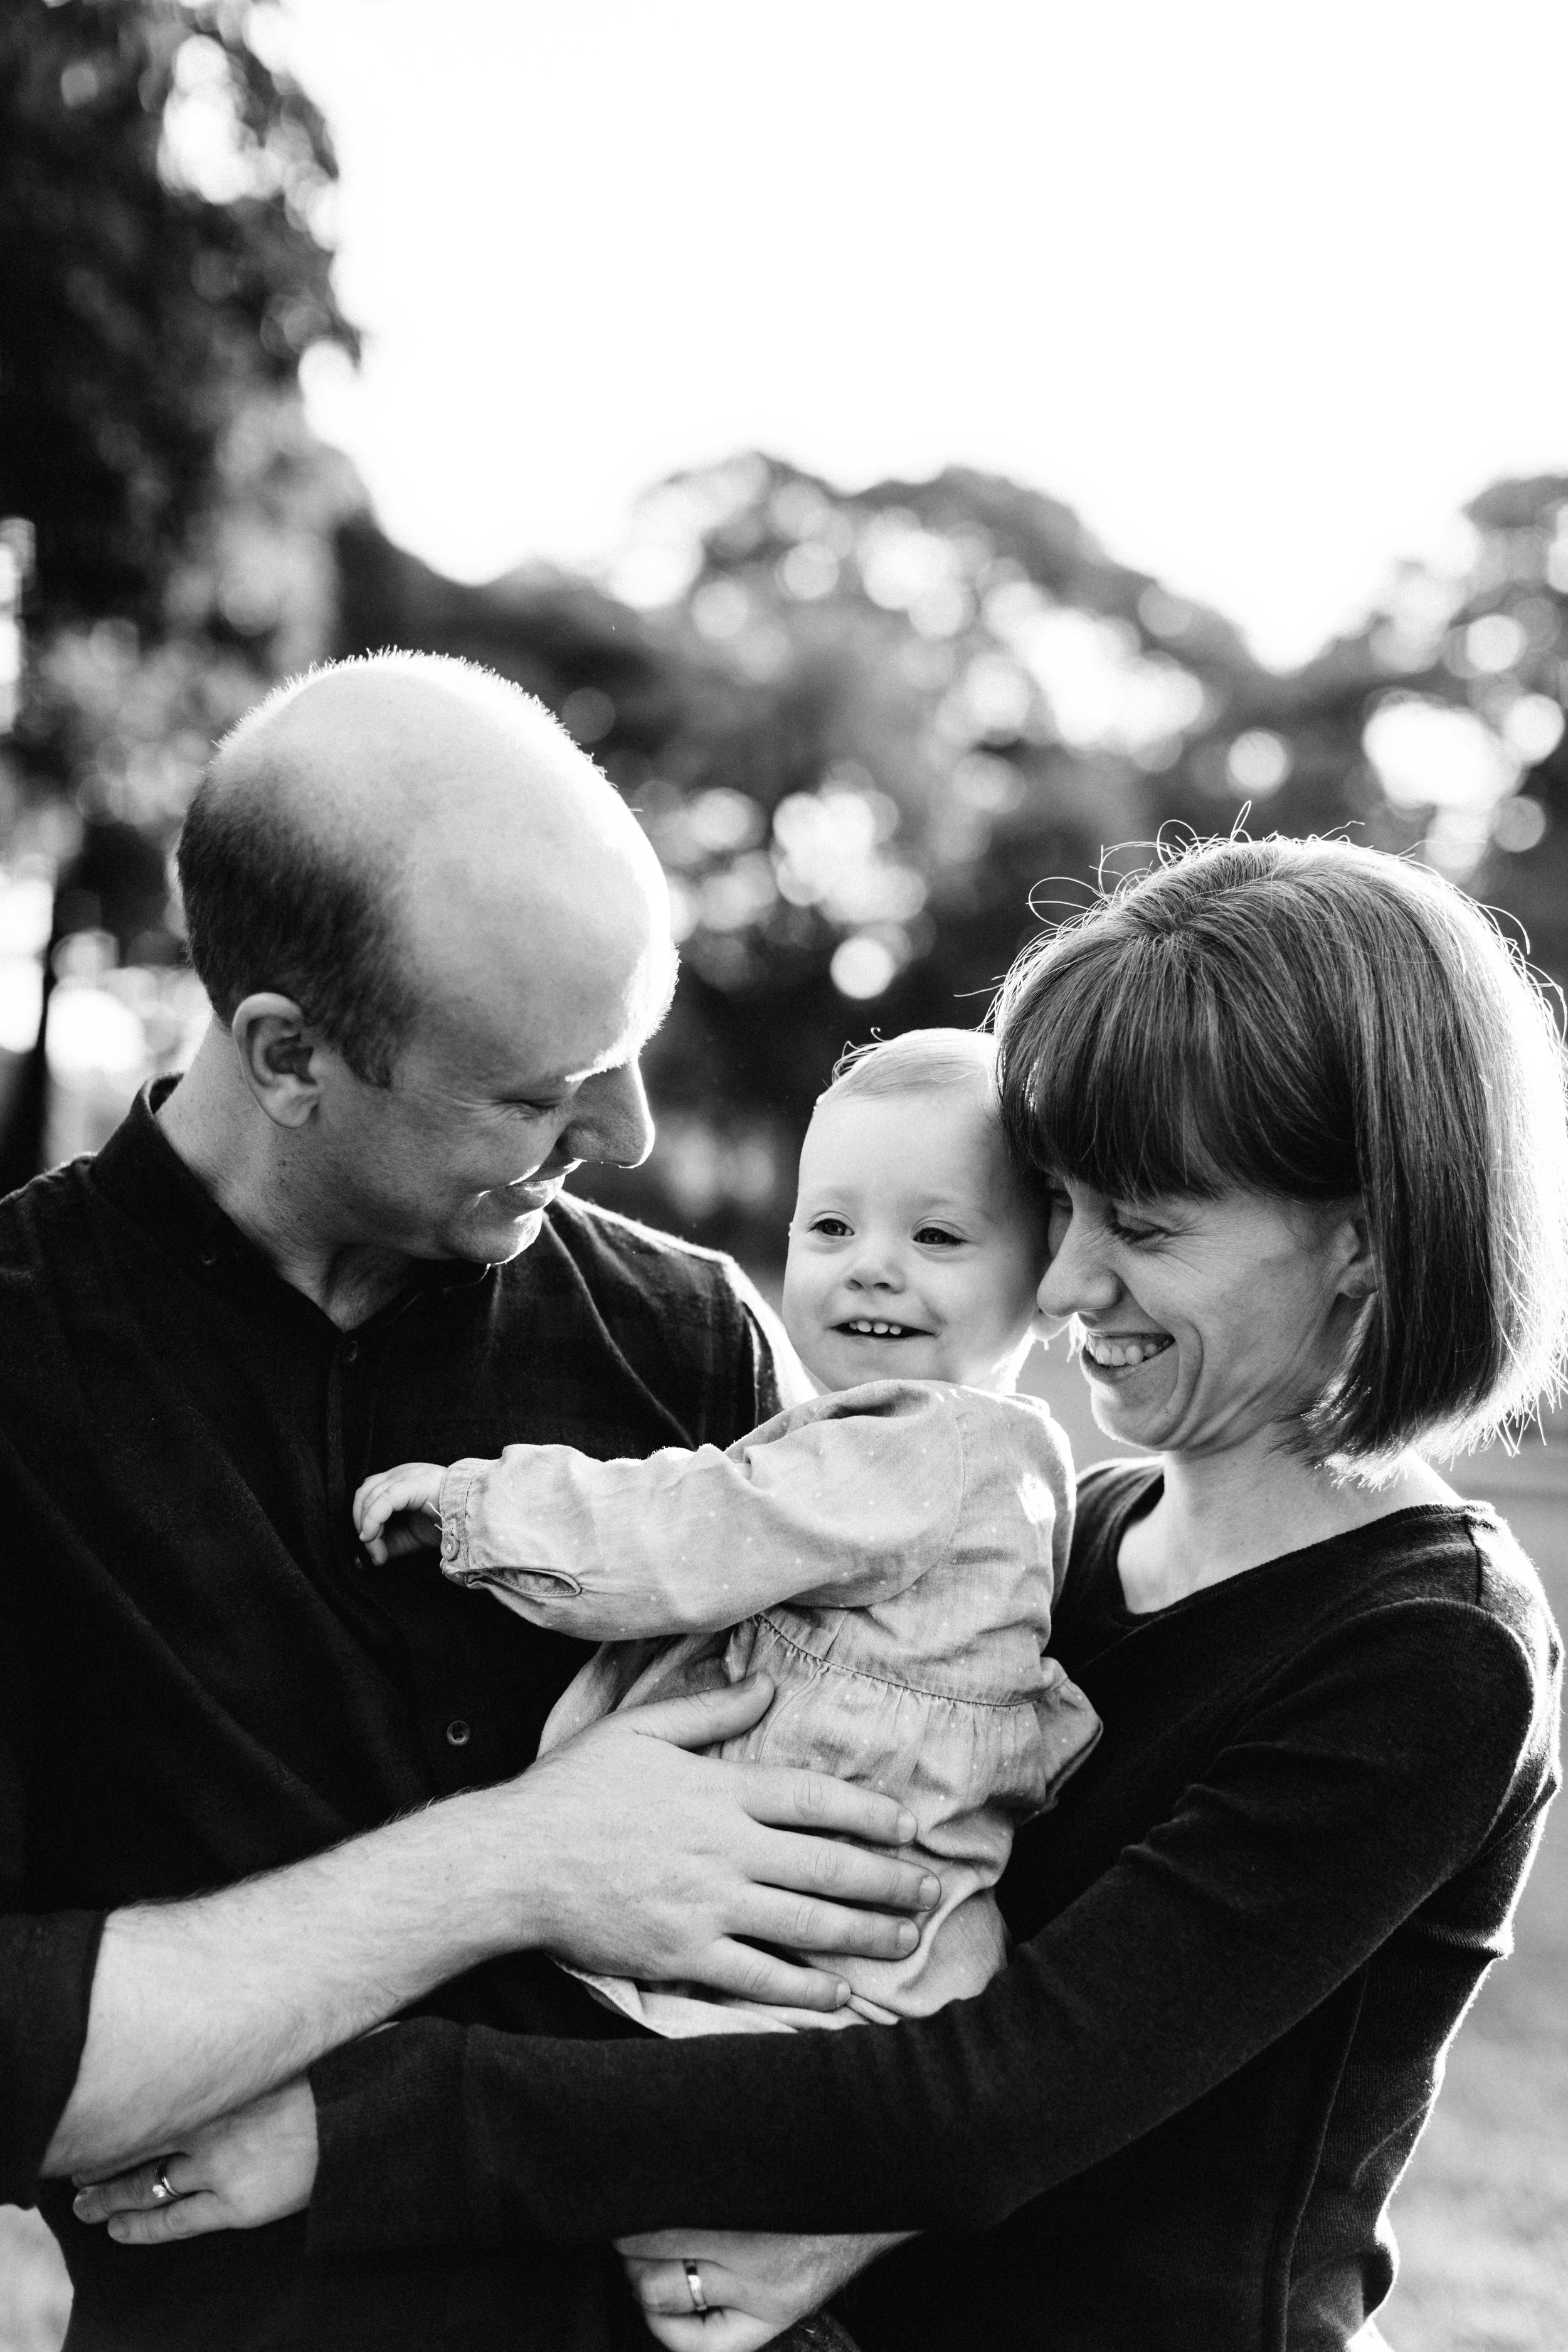 ashfield-family-photographer-camden-macarthur-sander-family-33.jpg